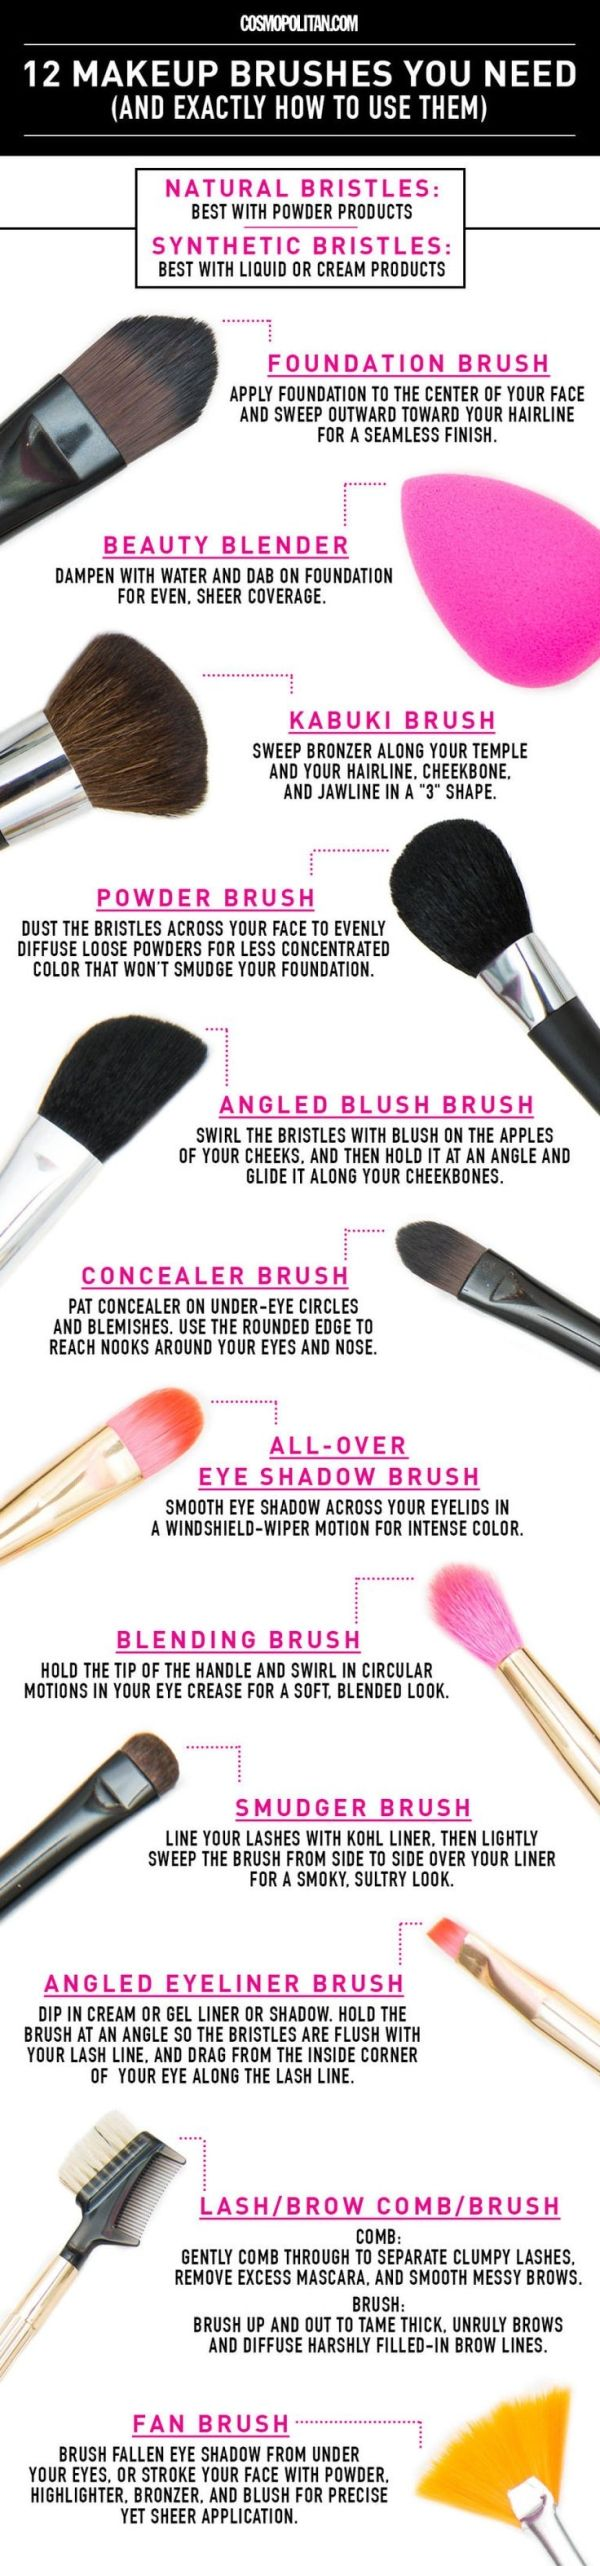 THE BEST MAKEUP BRUSHES GUIDE: Cosmopolitan.com rounded up the best and most helpful beauty brushes and makeup tools every girl needs in her arsenal. Here you'll learn how to use each tool and what makeup to use with it. Click through to see beauty tutorials that teach you the best way to apply makeup and use these must-have brushes including a foundation brush, beauty blender, powder brush, angled blush brush, concealer brush, blender brush, eyeshadow brush, and more. by oldrose